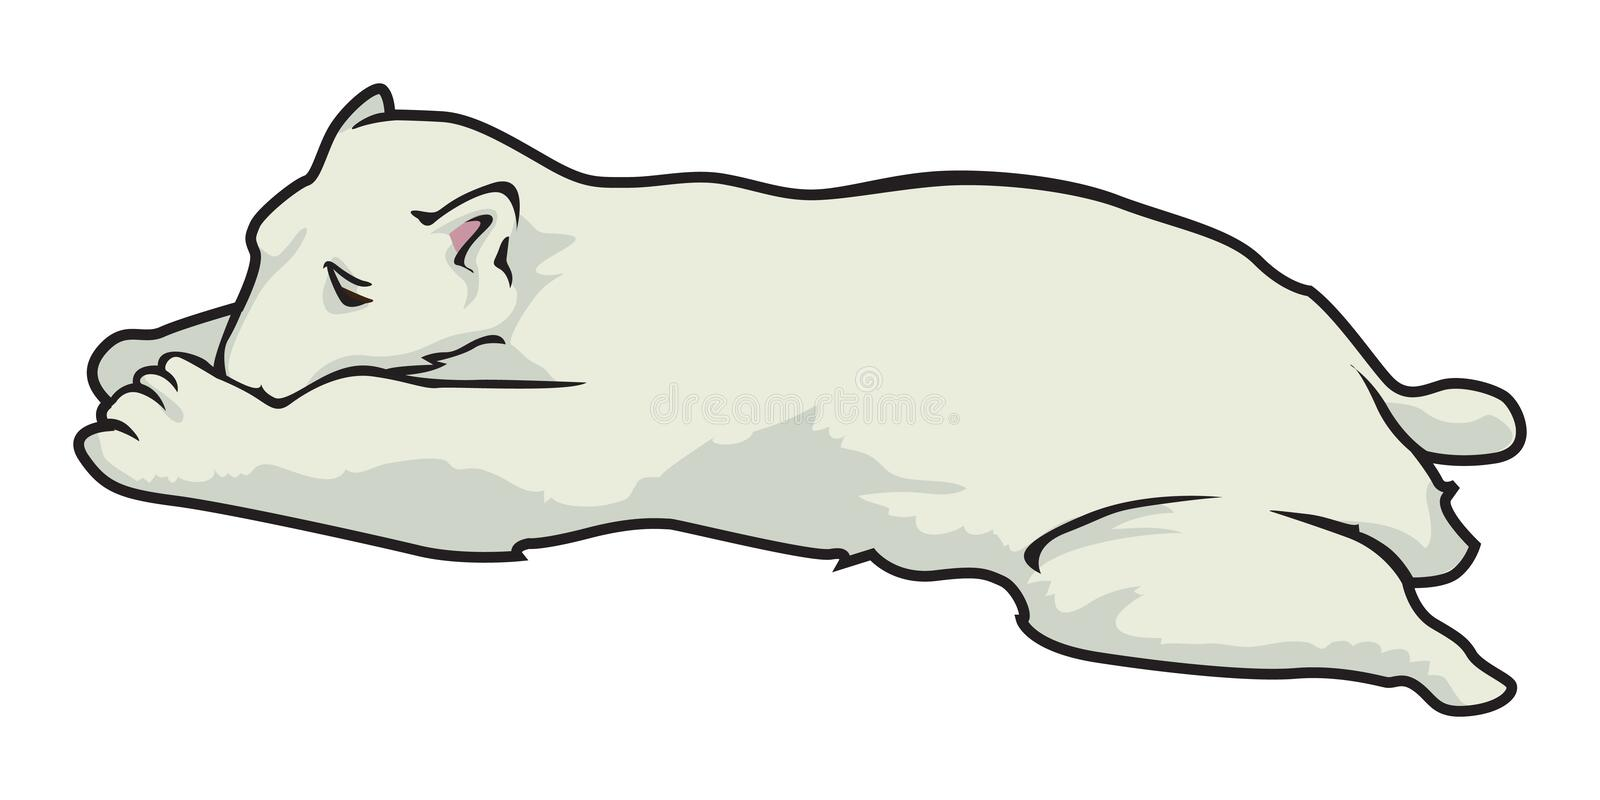 Polar bear sleeping royalty free illustration